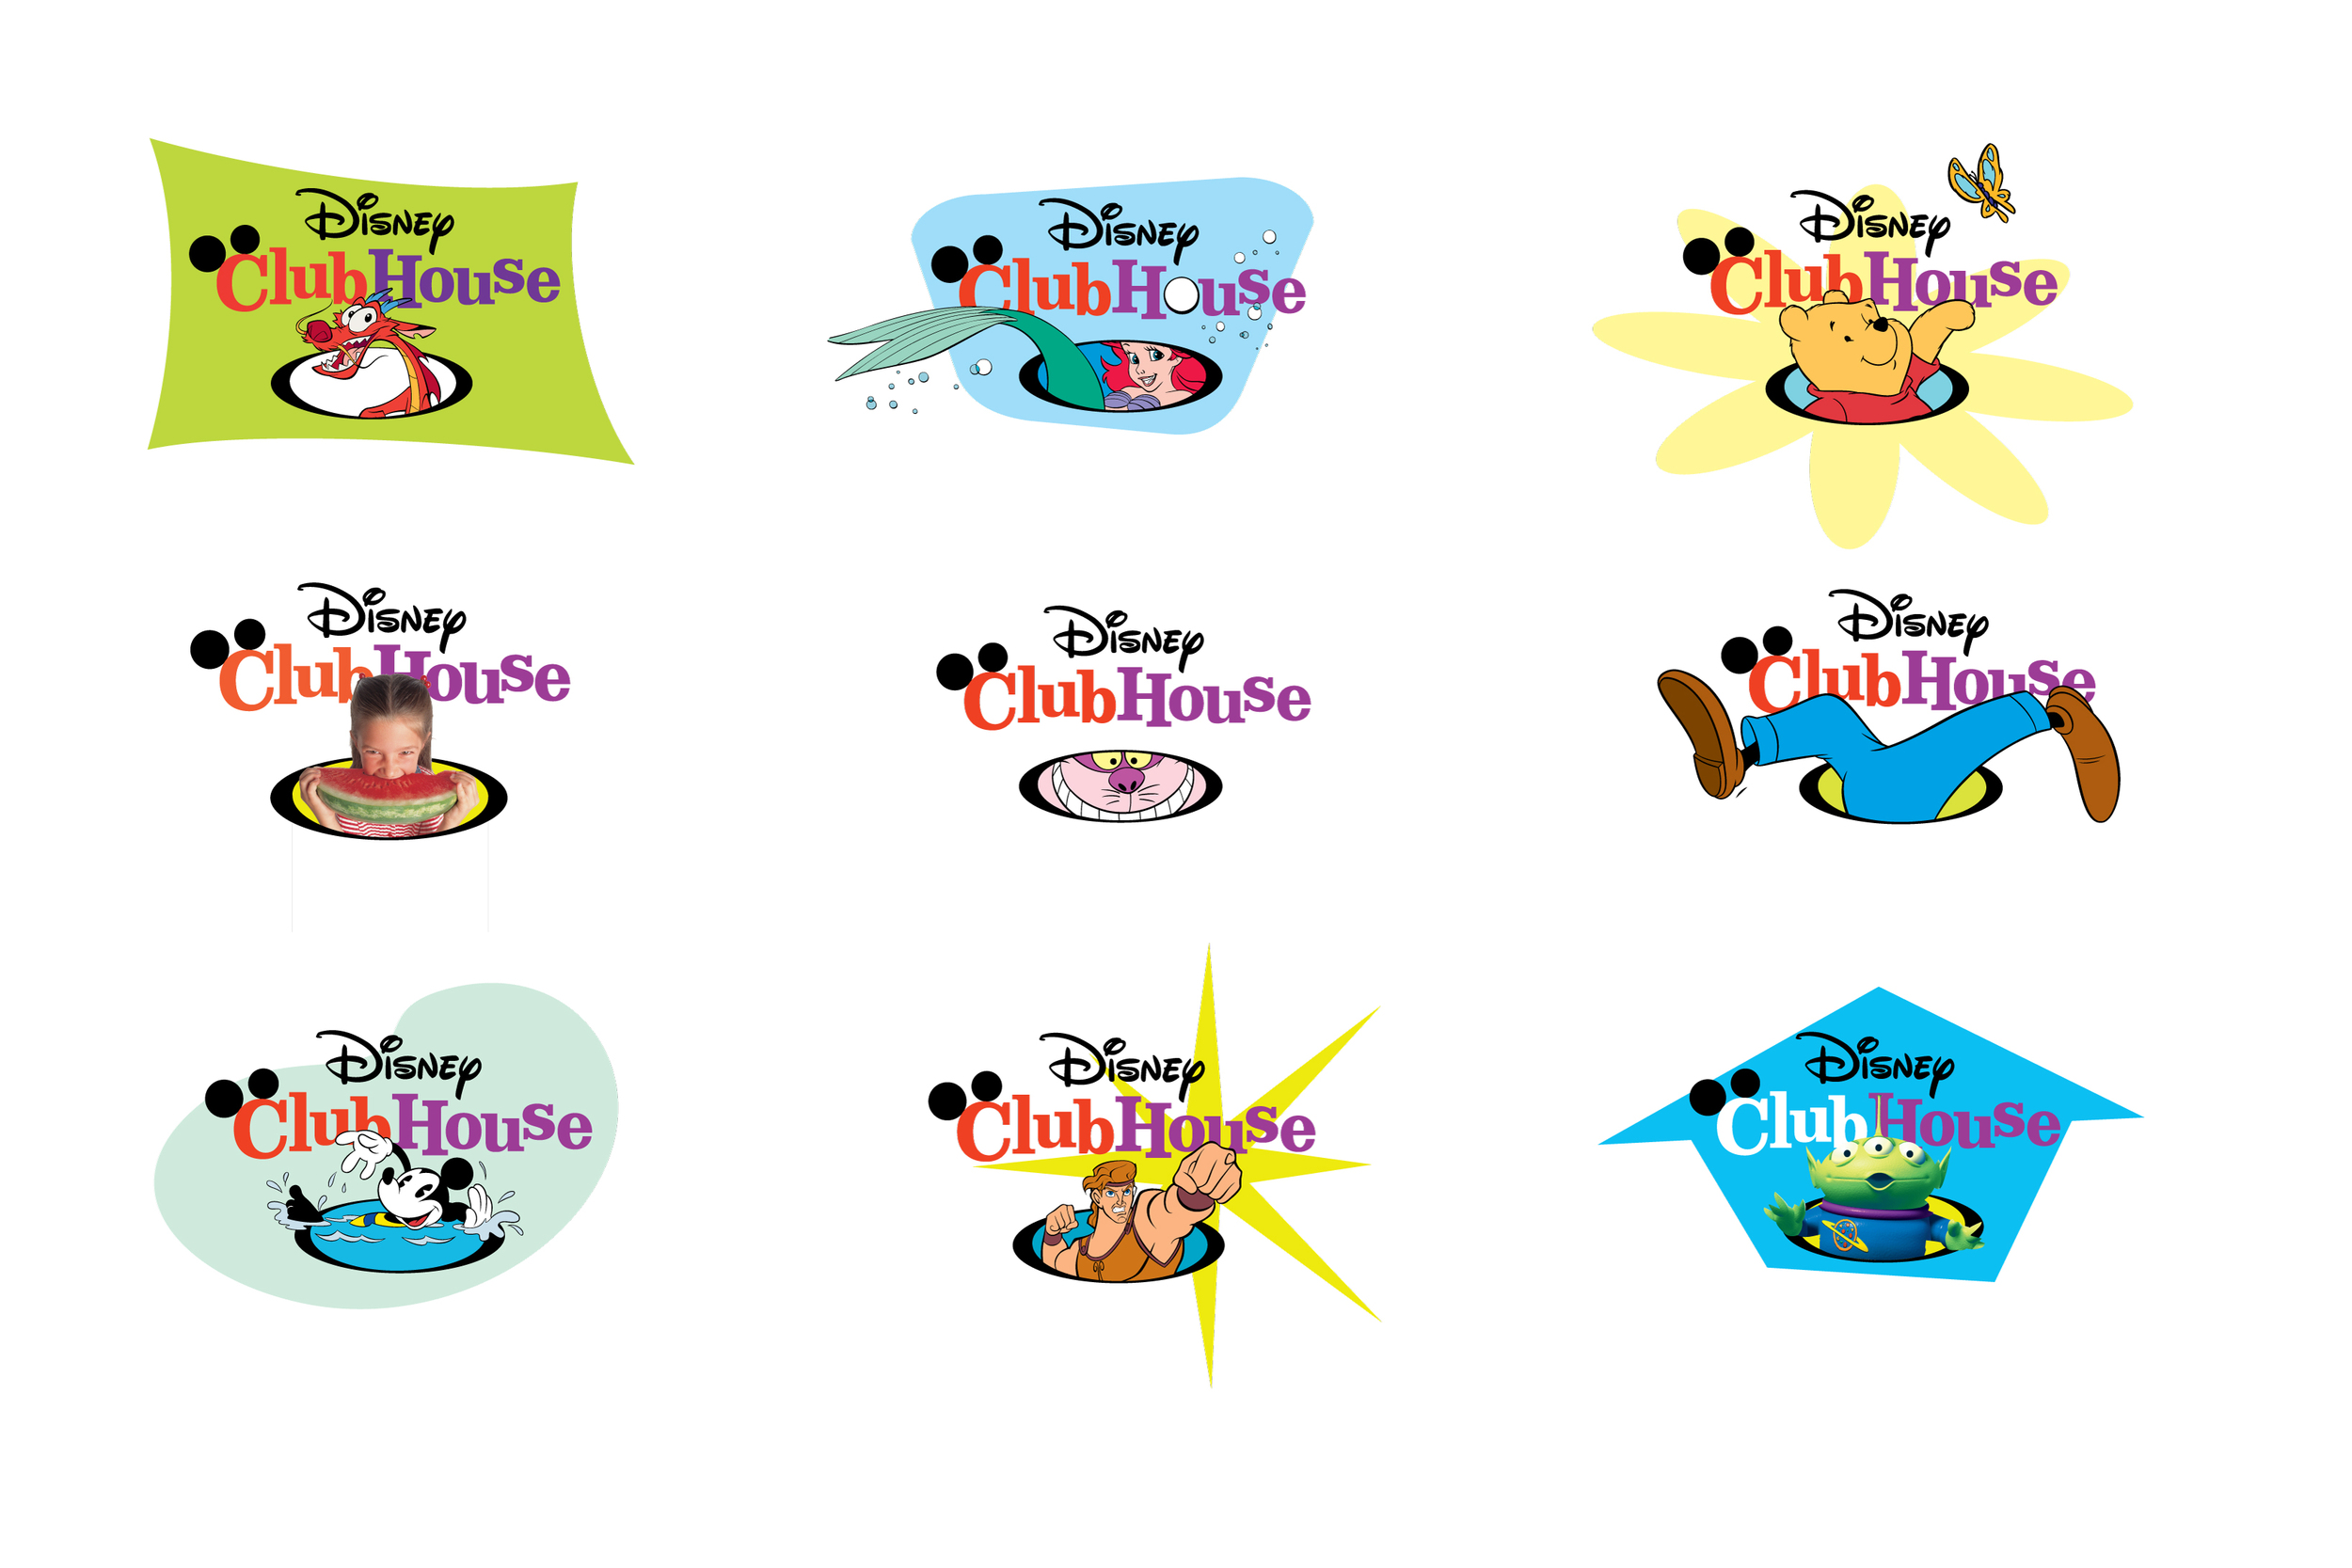 Disney-Clubhouse-all.jpg